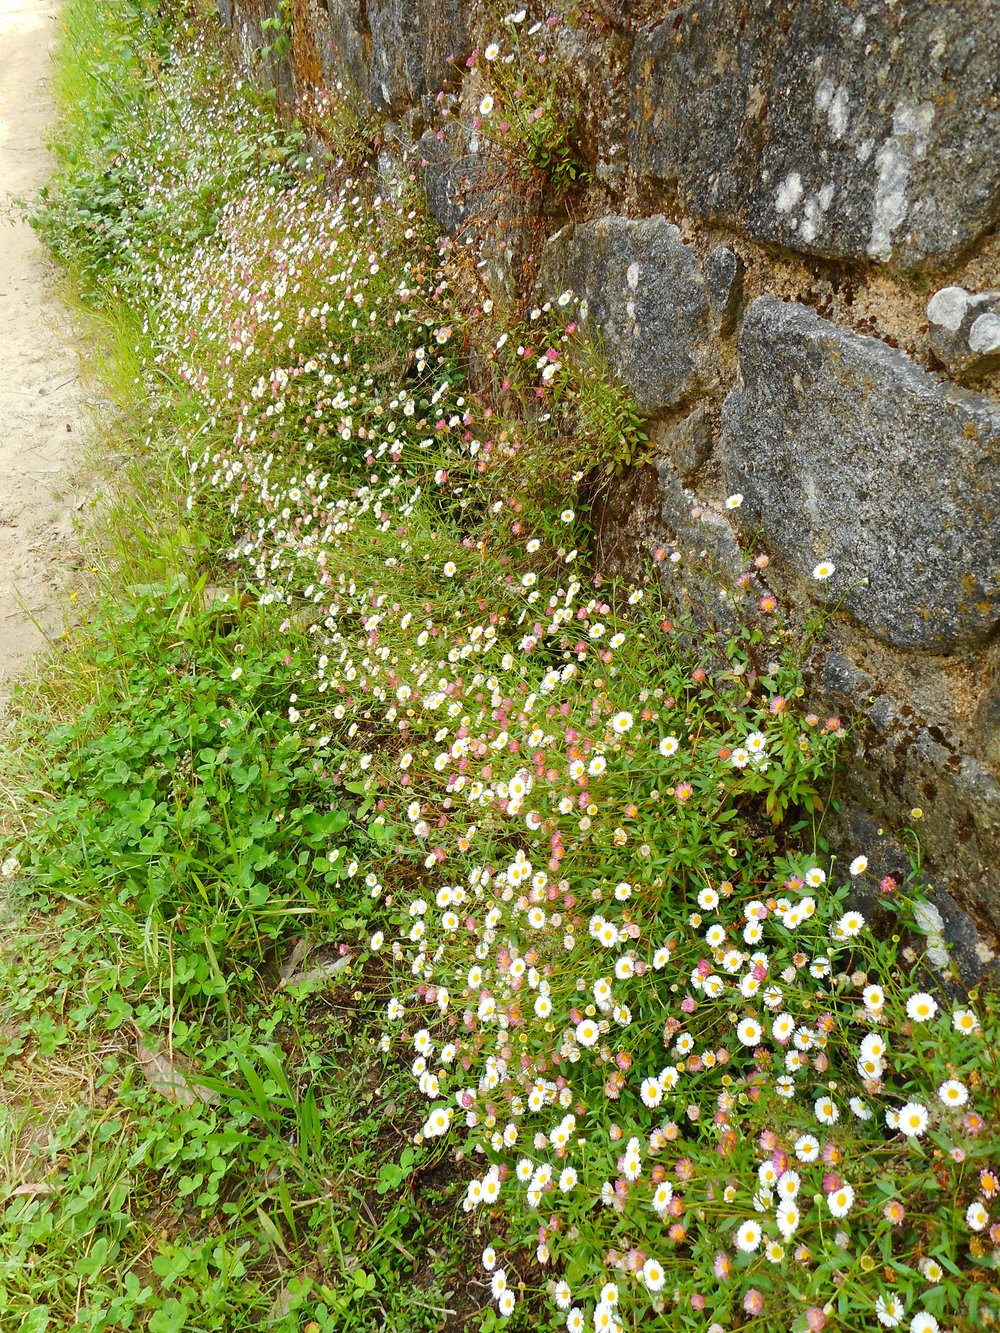 I loved these wild daisies growing out of this brick wall